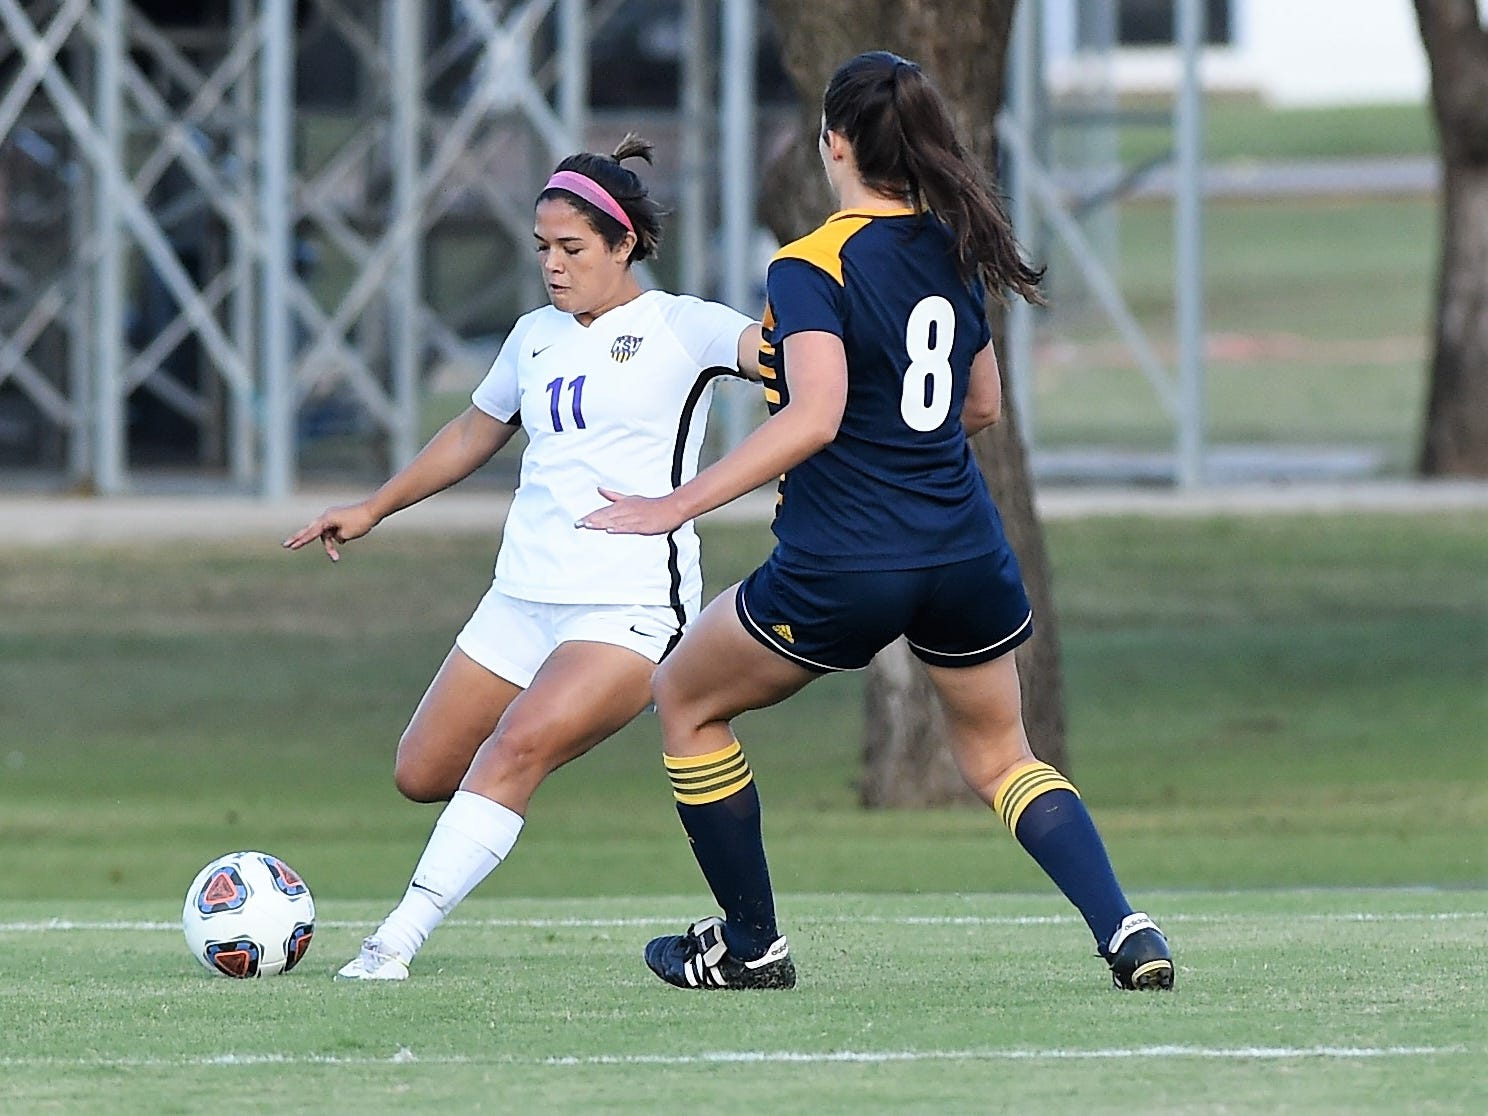 Hardin-Simmons defender Avery Lara (11) crosses the ball against Howard Payne at the HSU Soccer Complex on Thursday, Oct. 11, 2018. The Cowgirls won 4-1.